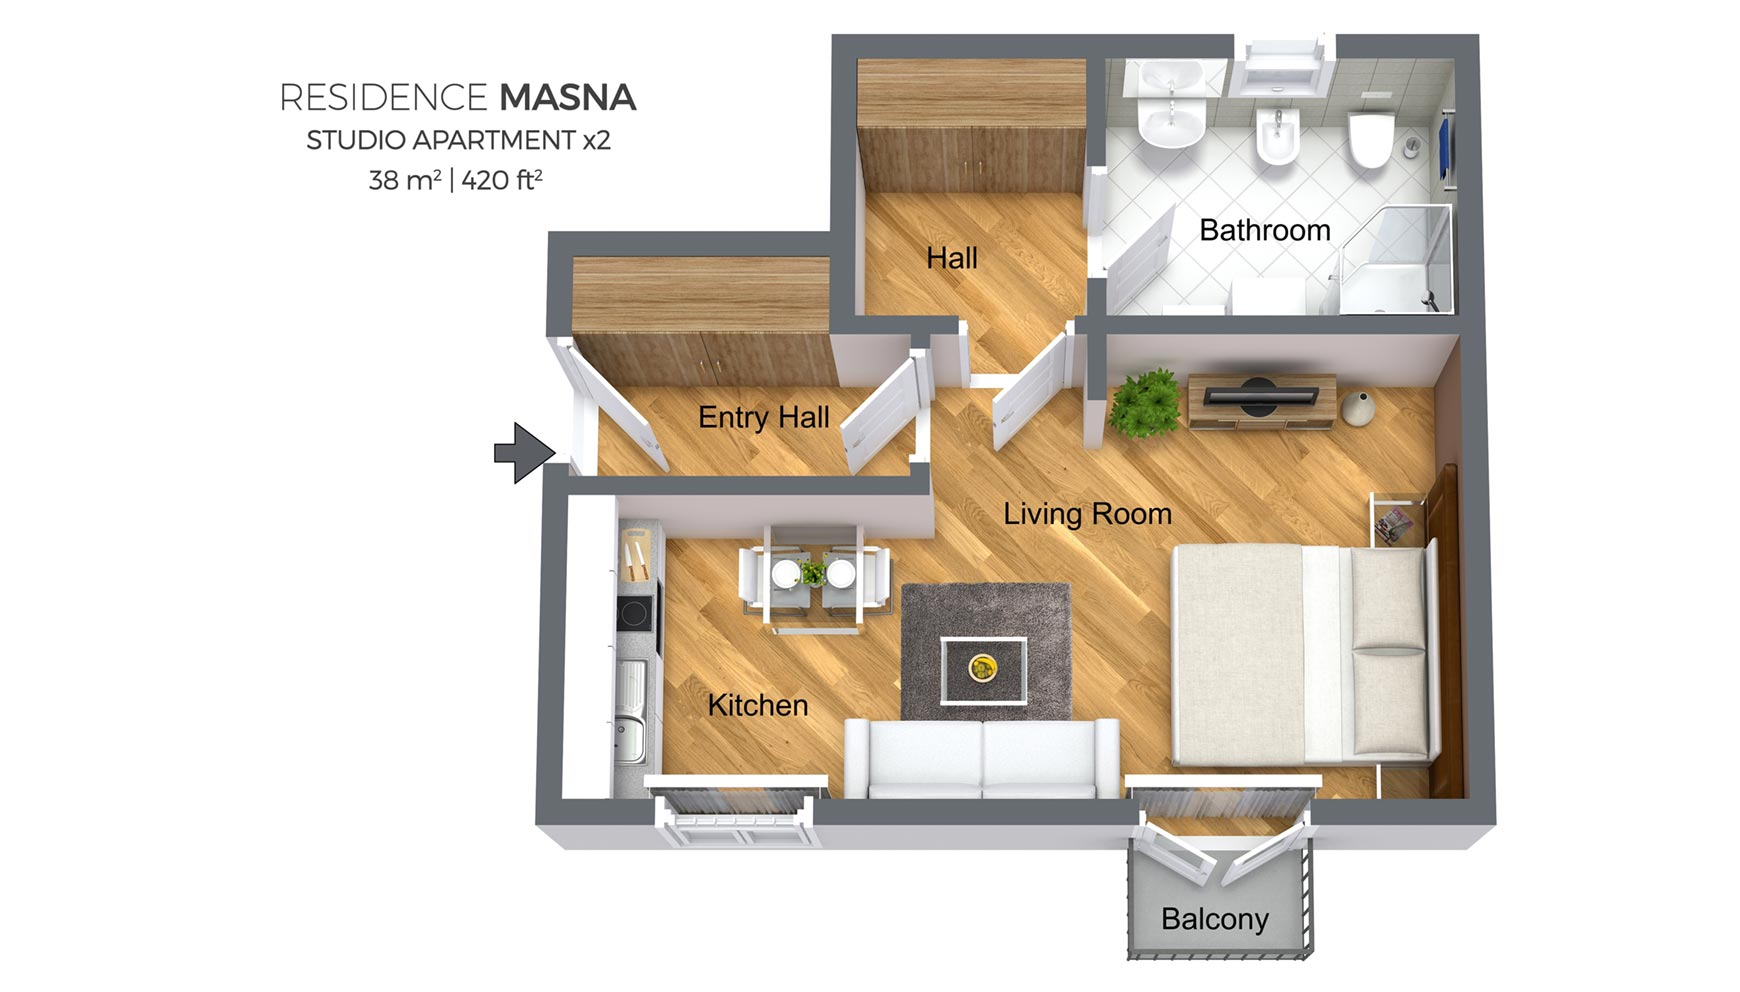 Studio Apartment Type 2 | Residence Masna